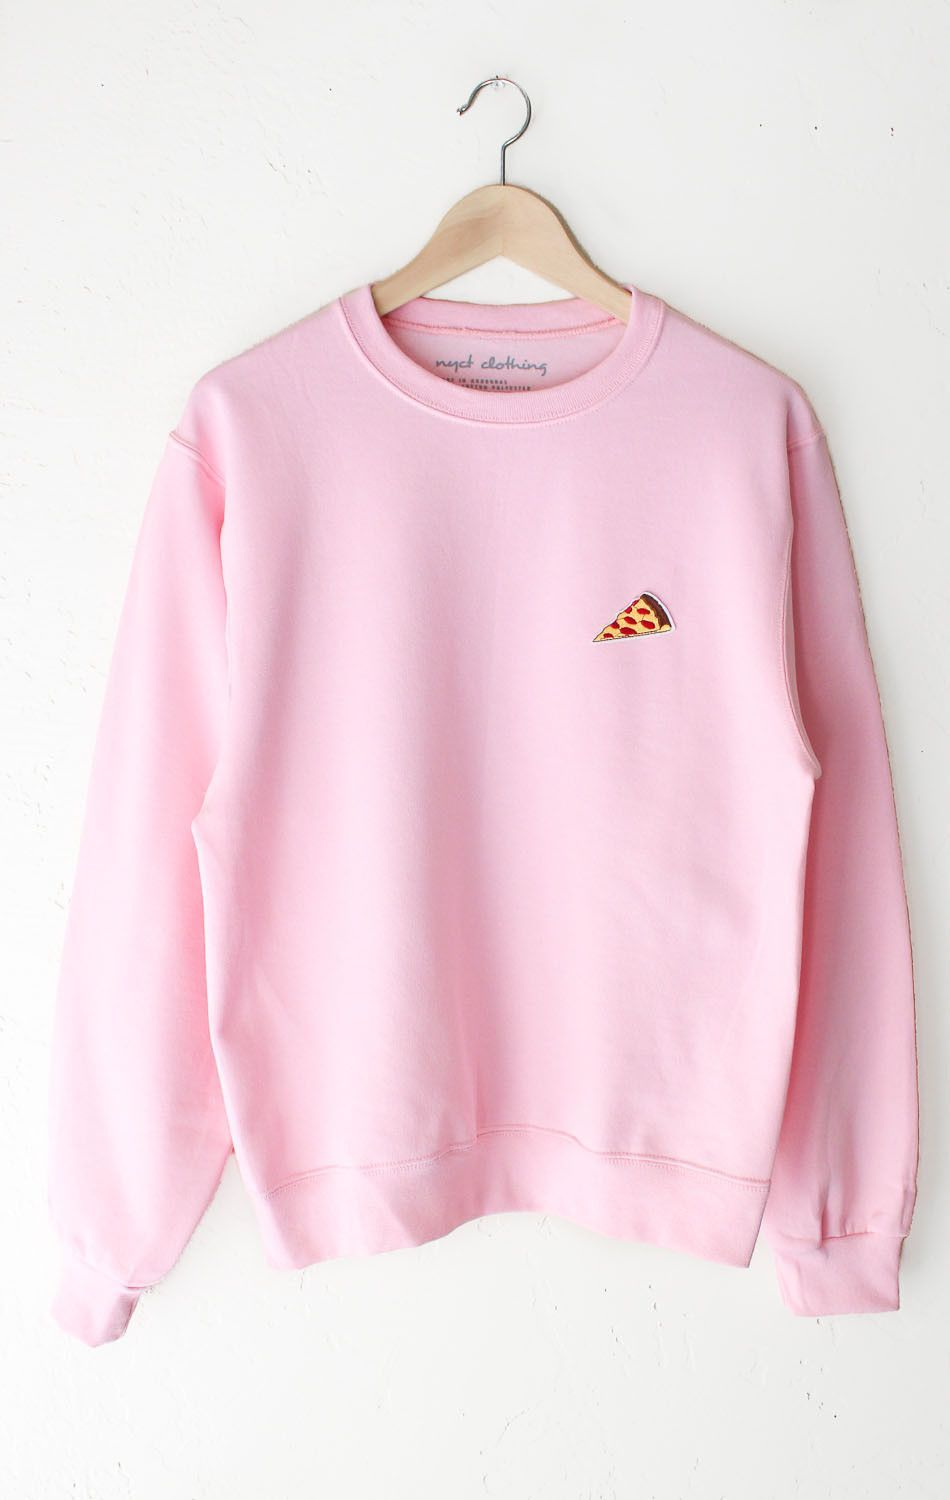 Pizza Oversized Sweater - Pink | Patches, Unisex and Clothing